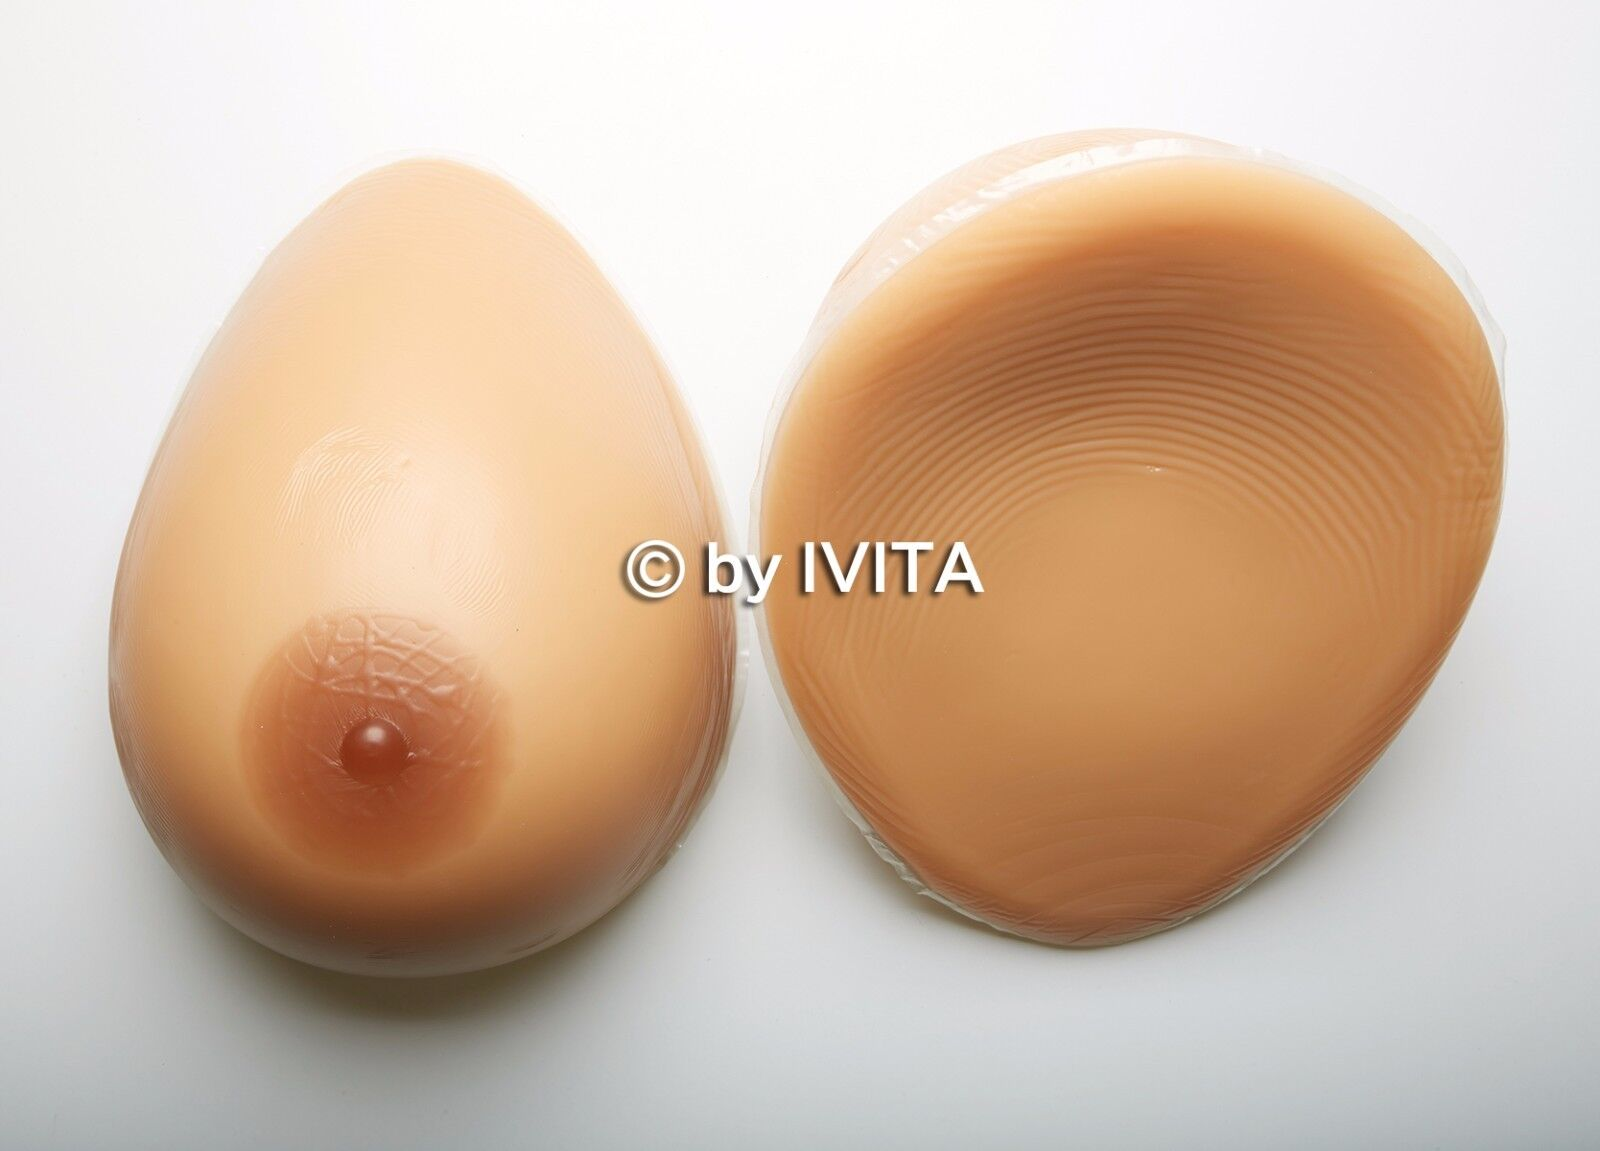 IVITA 2400g Silicone False Breast Forms G Cup Crossdress Transvestite Fake Boobs